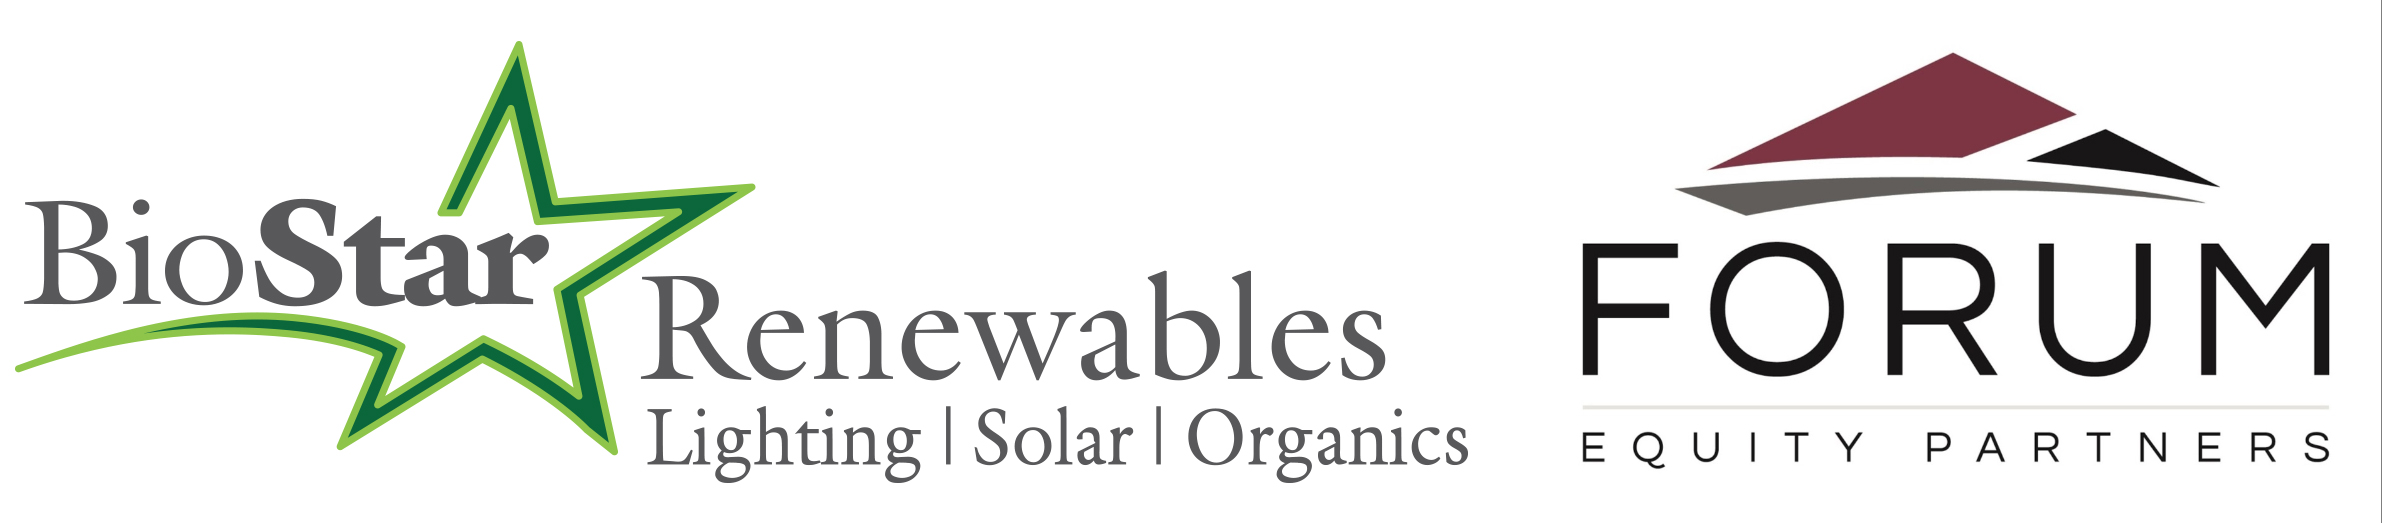 BioStar Renewables and Forum Equity Partners Announce $15 Million Development Capital Financing Commitment for Solar Power Generation Projects.